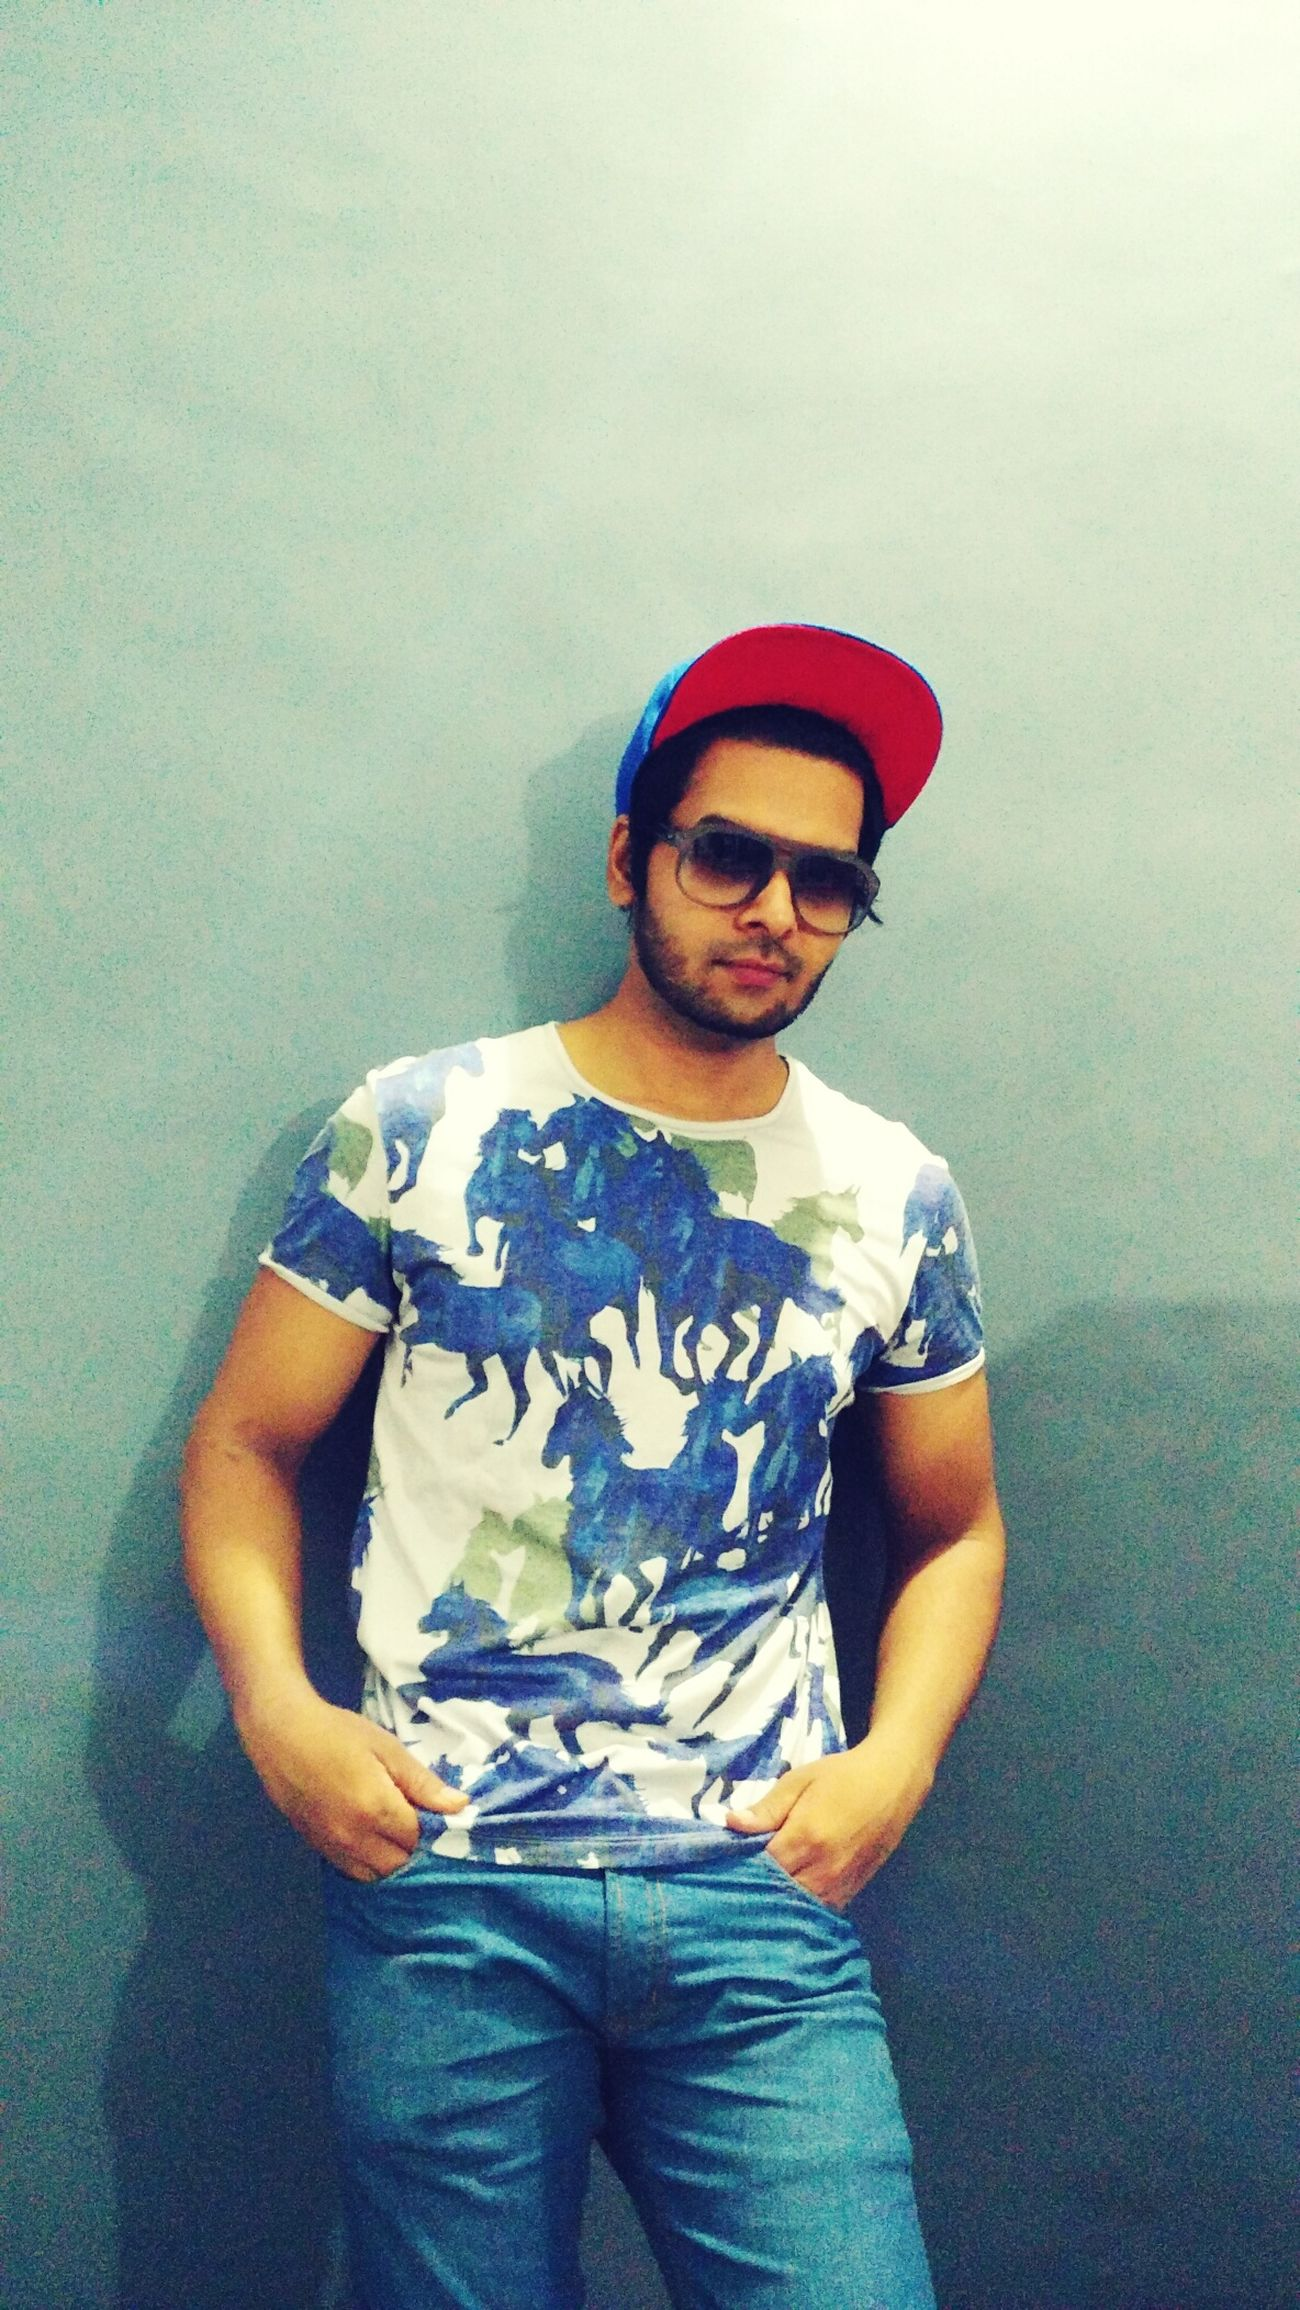 Supersexy Indiansexymen Superman Cute Snapback Swag OBEY Obeysnapback Attitude Glamorous